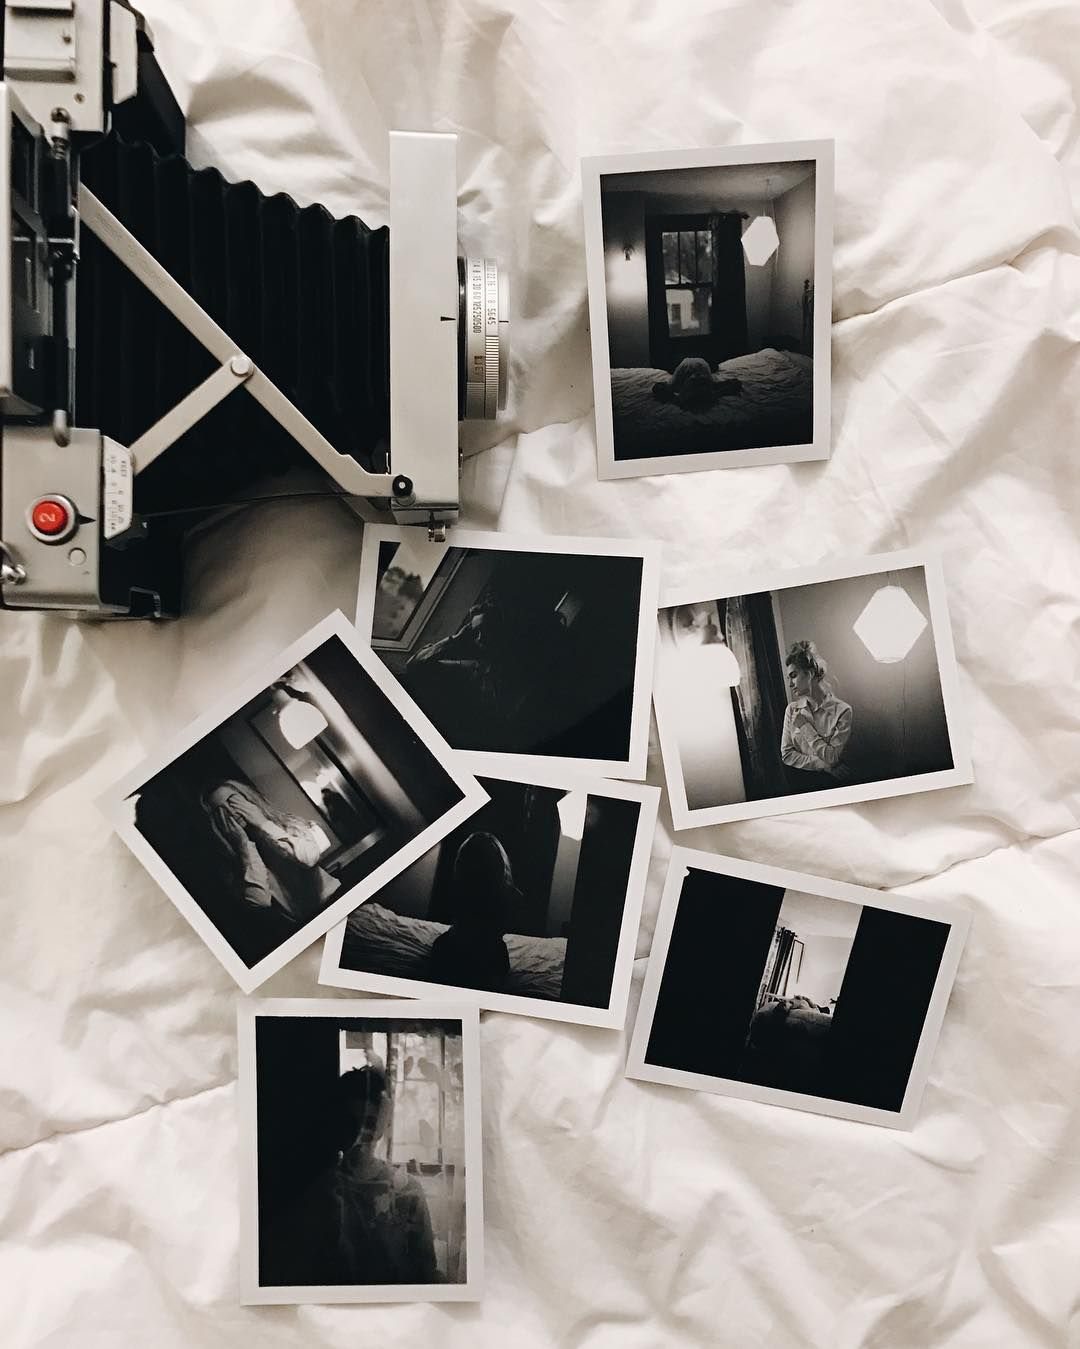 Polaroids with @brittabug. Very excited to receive films scans from this shoot. Head over to my IG story for some close ups of each polaroid. :) #polaroid180 #longlivefilm #fp3000b